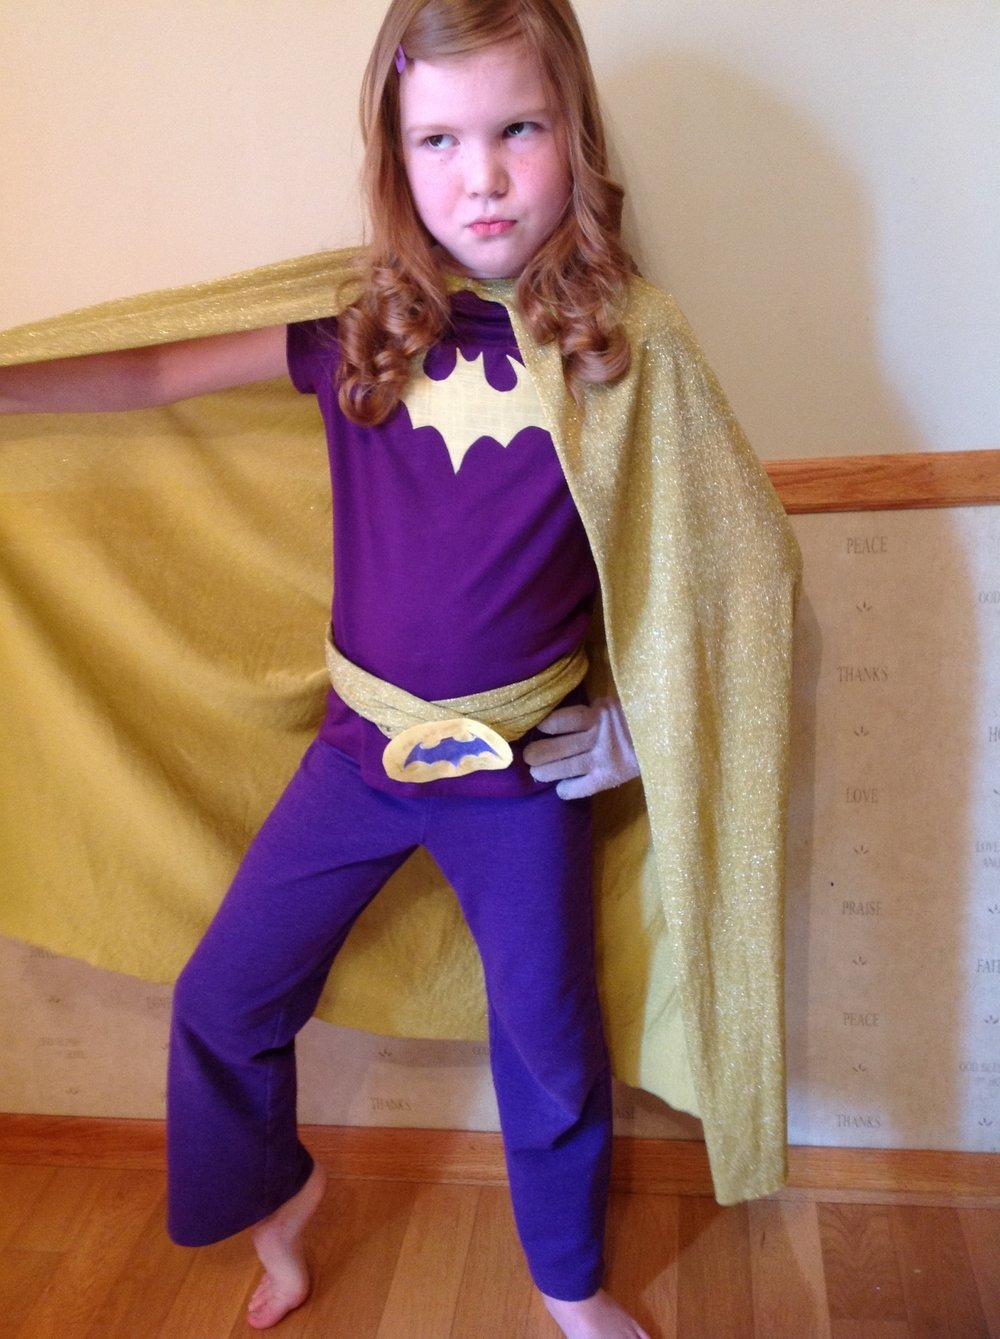 My other fierce daughter showing off her Batgirl skills.